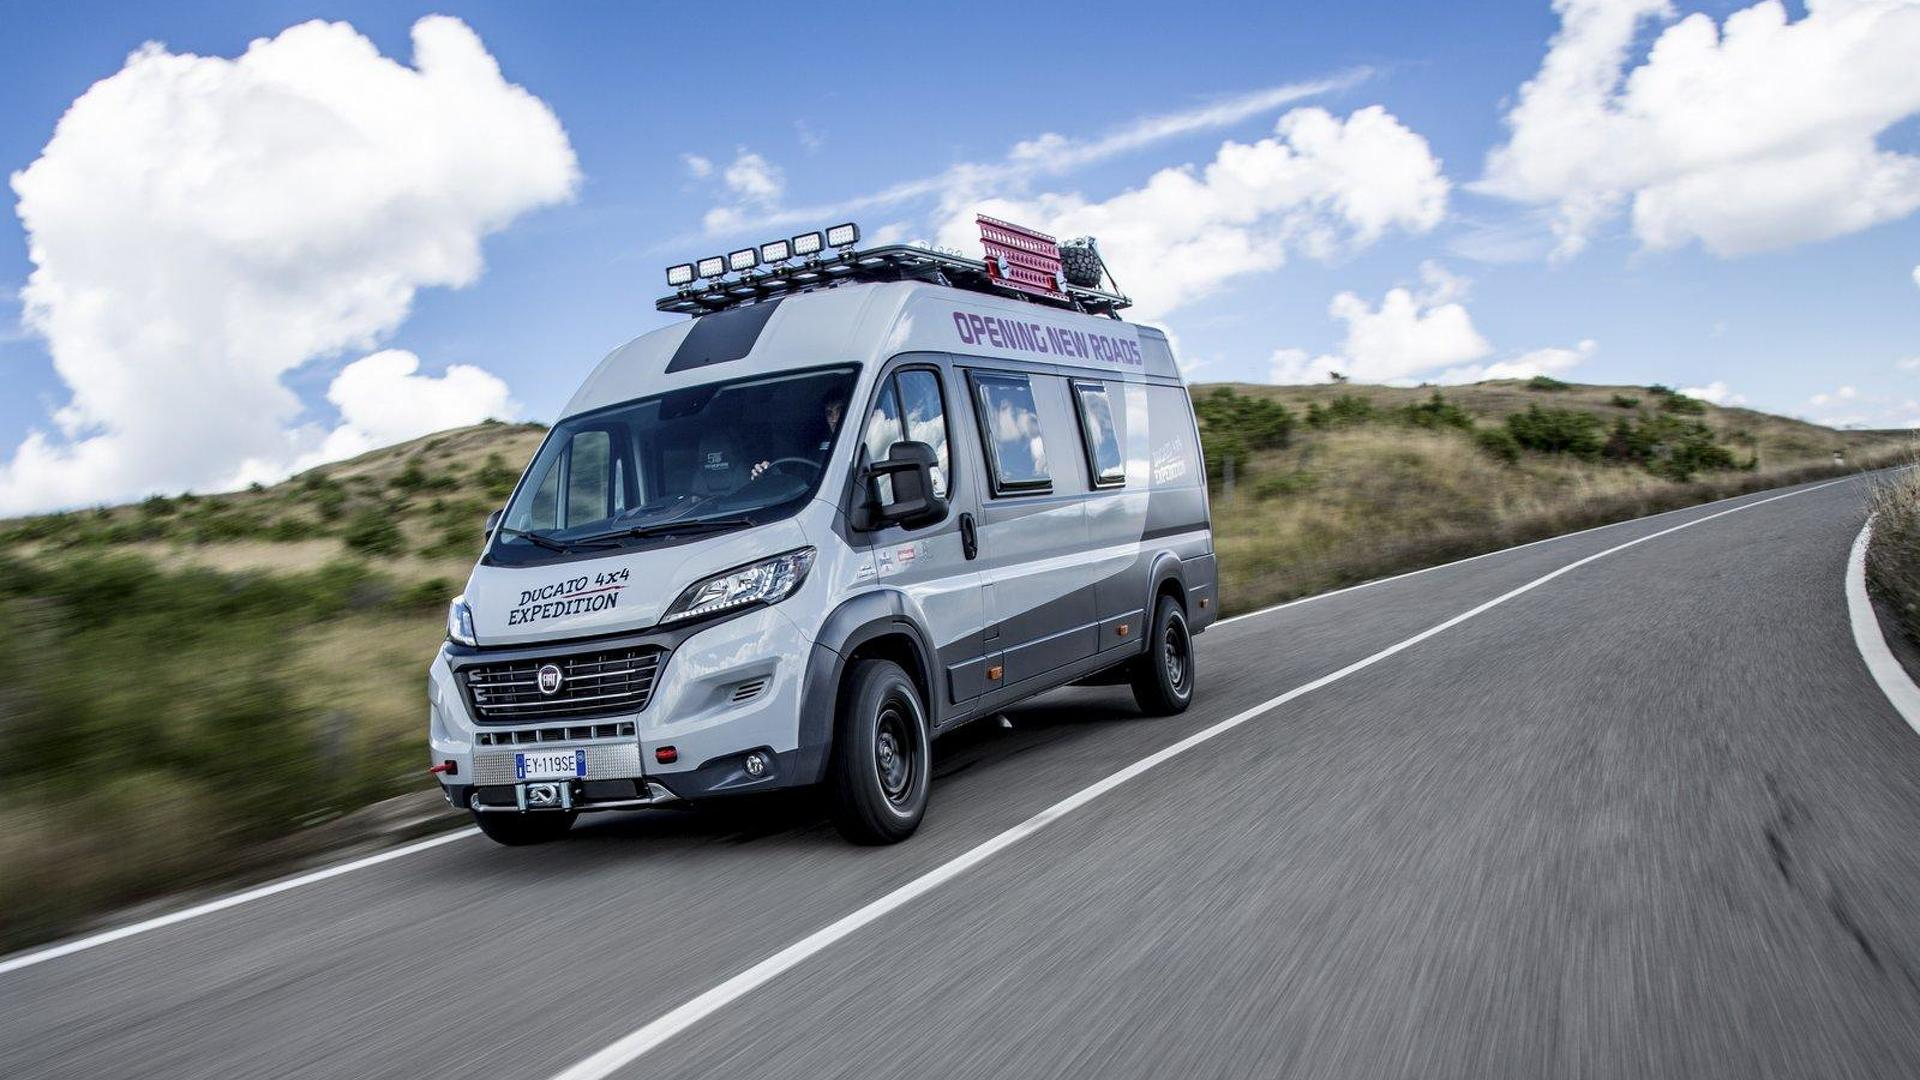 a0bab29041aef5 Fiat Ducato 4x4 Expedition unveiled